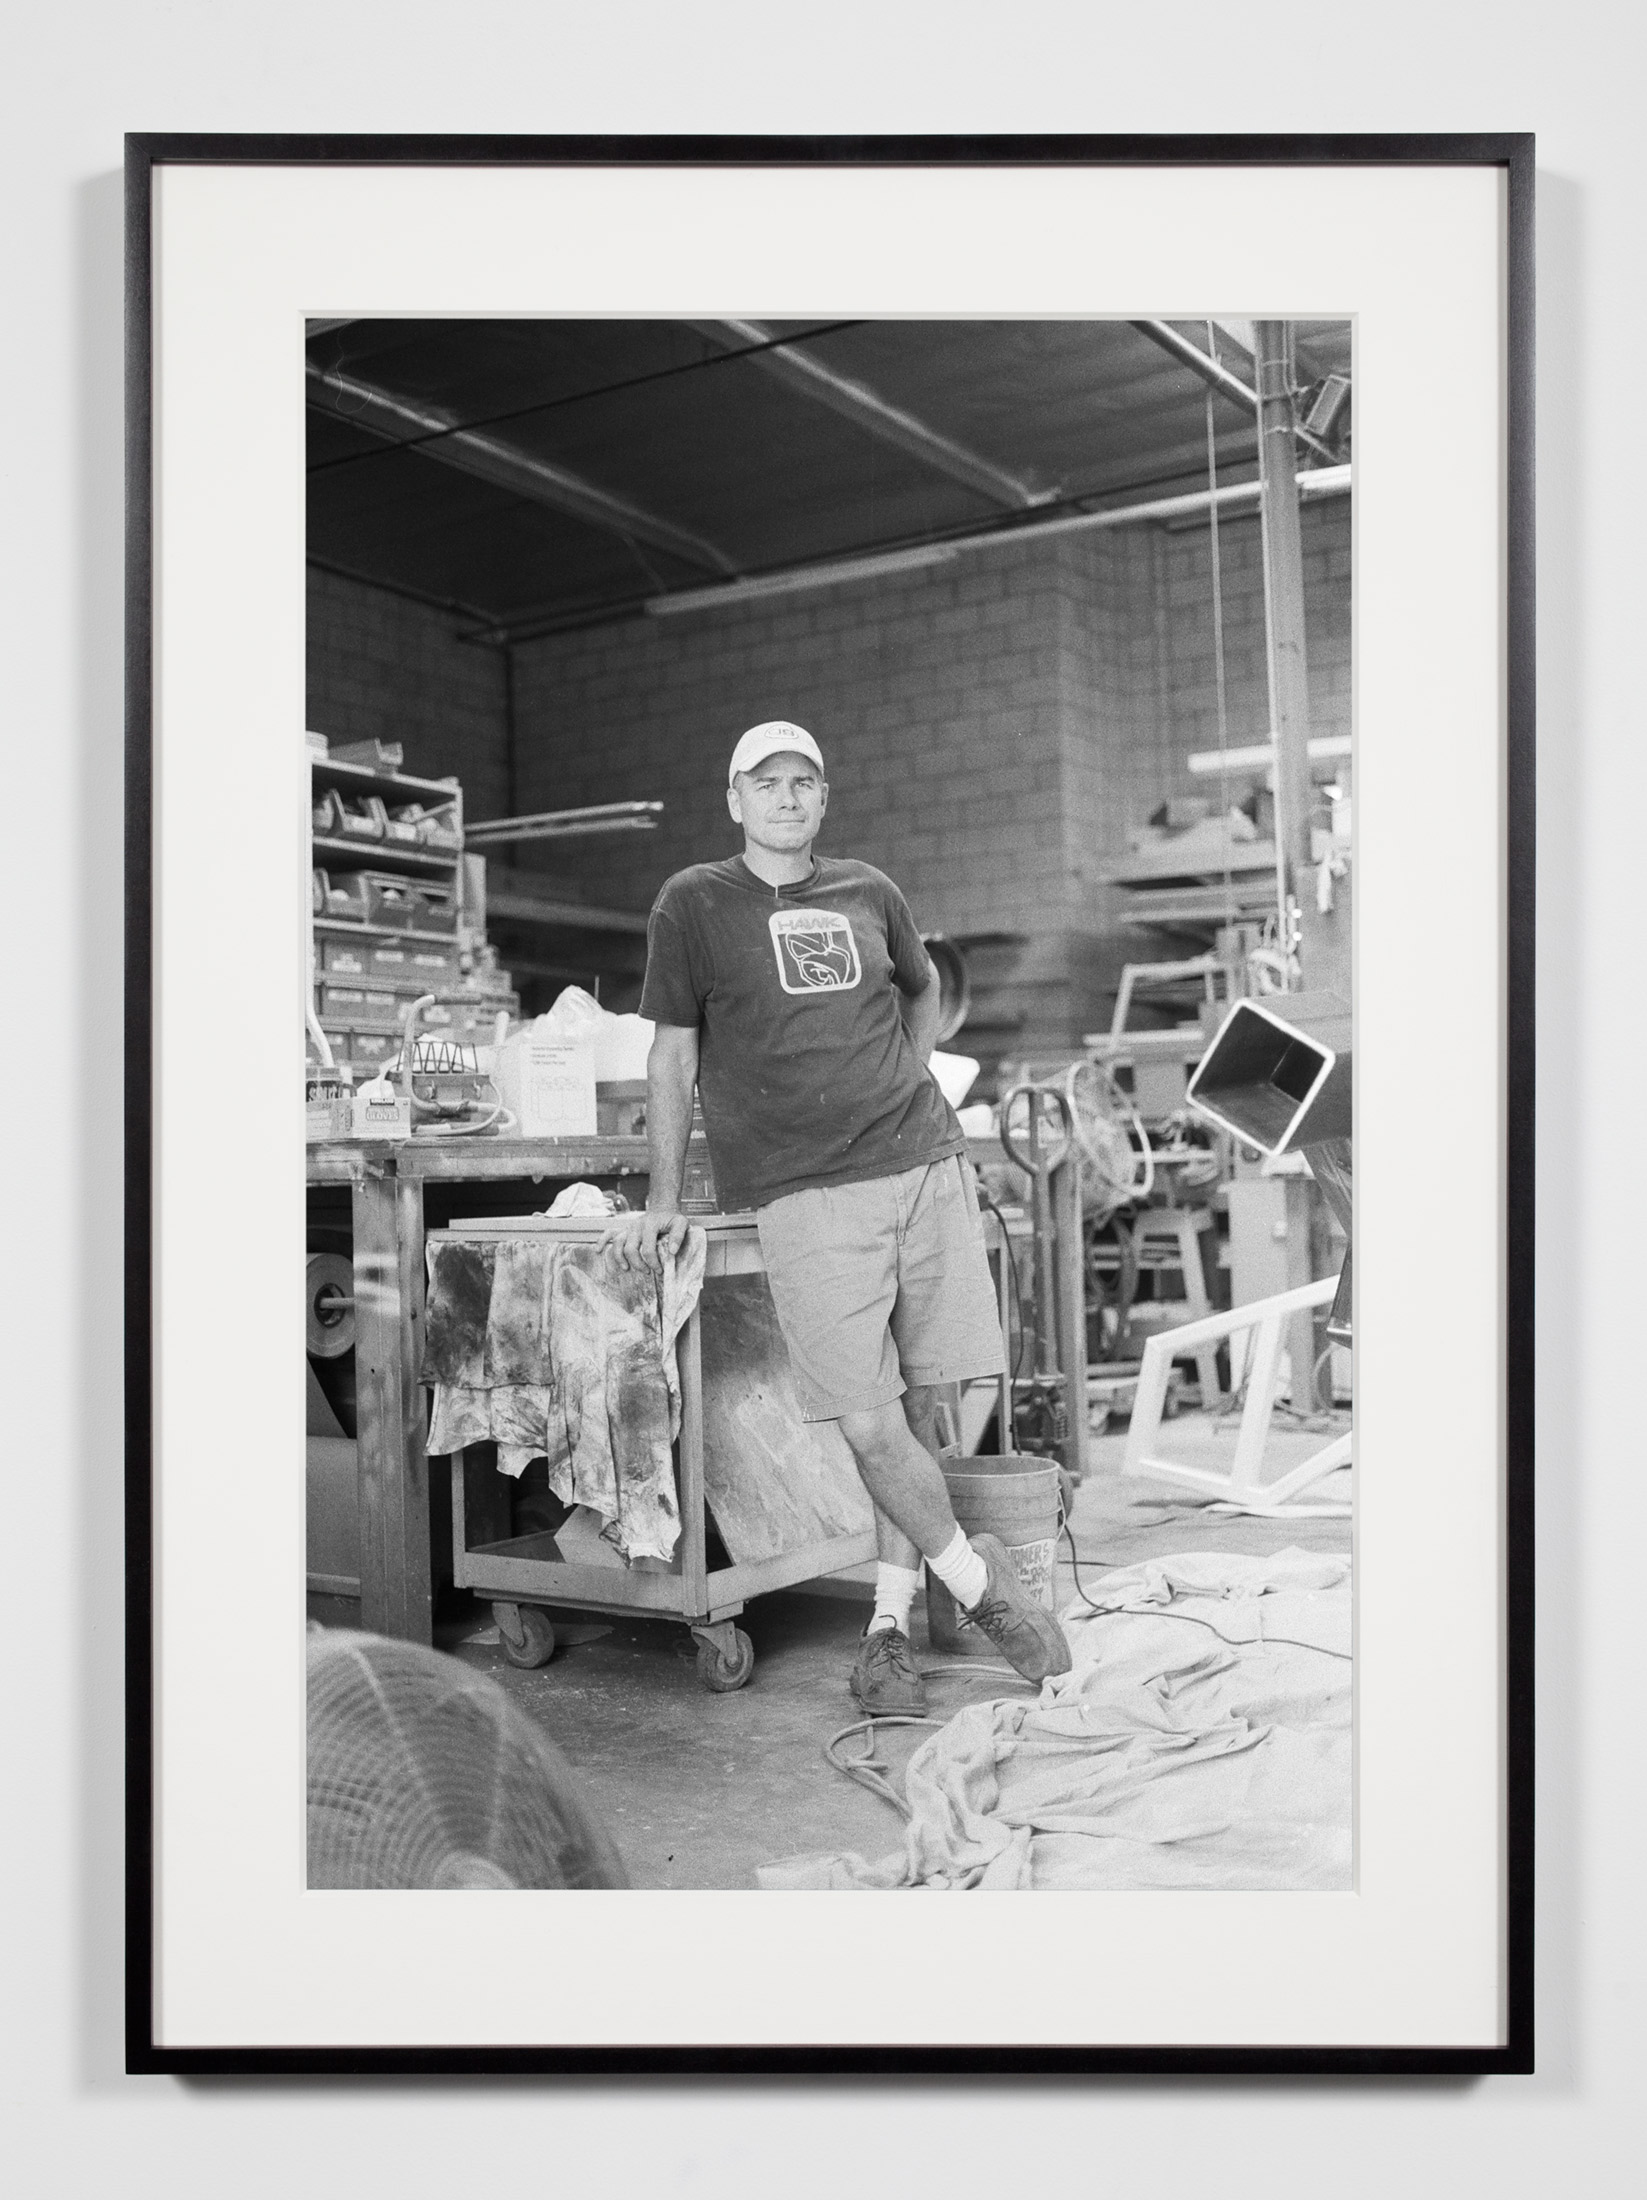 Fabricator (JD), Glendale, California, July 9, 2008    2009   Epson Ultrachrome K3 archival ink jet print on Hahnemühle Photo Rag paper  36 3/8 x 26 3/8 inches   Industrial Portraits, 2008–